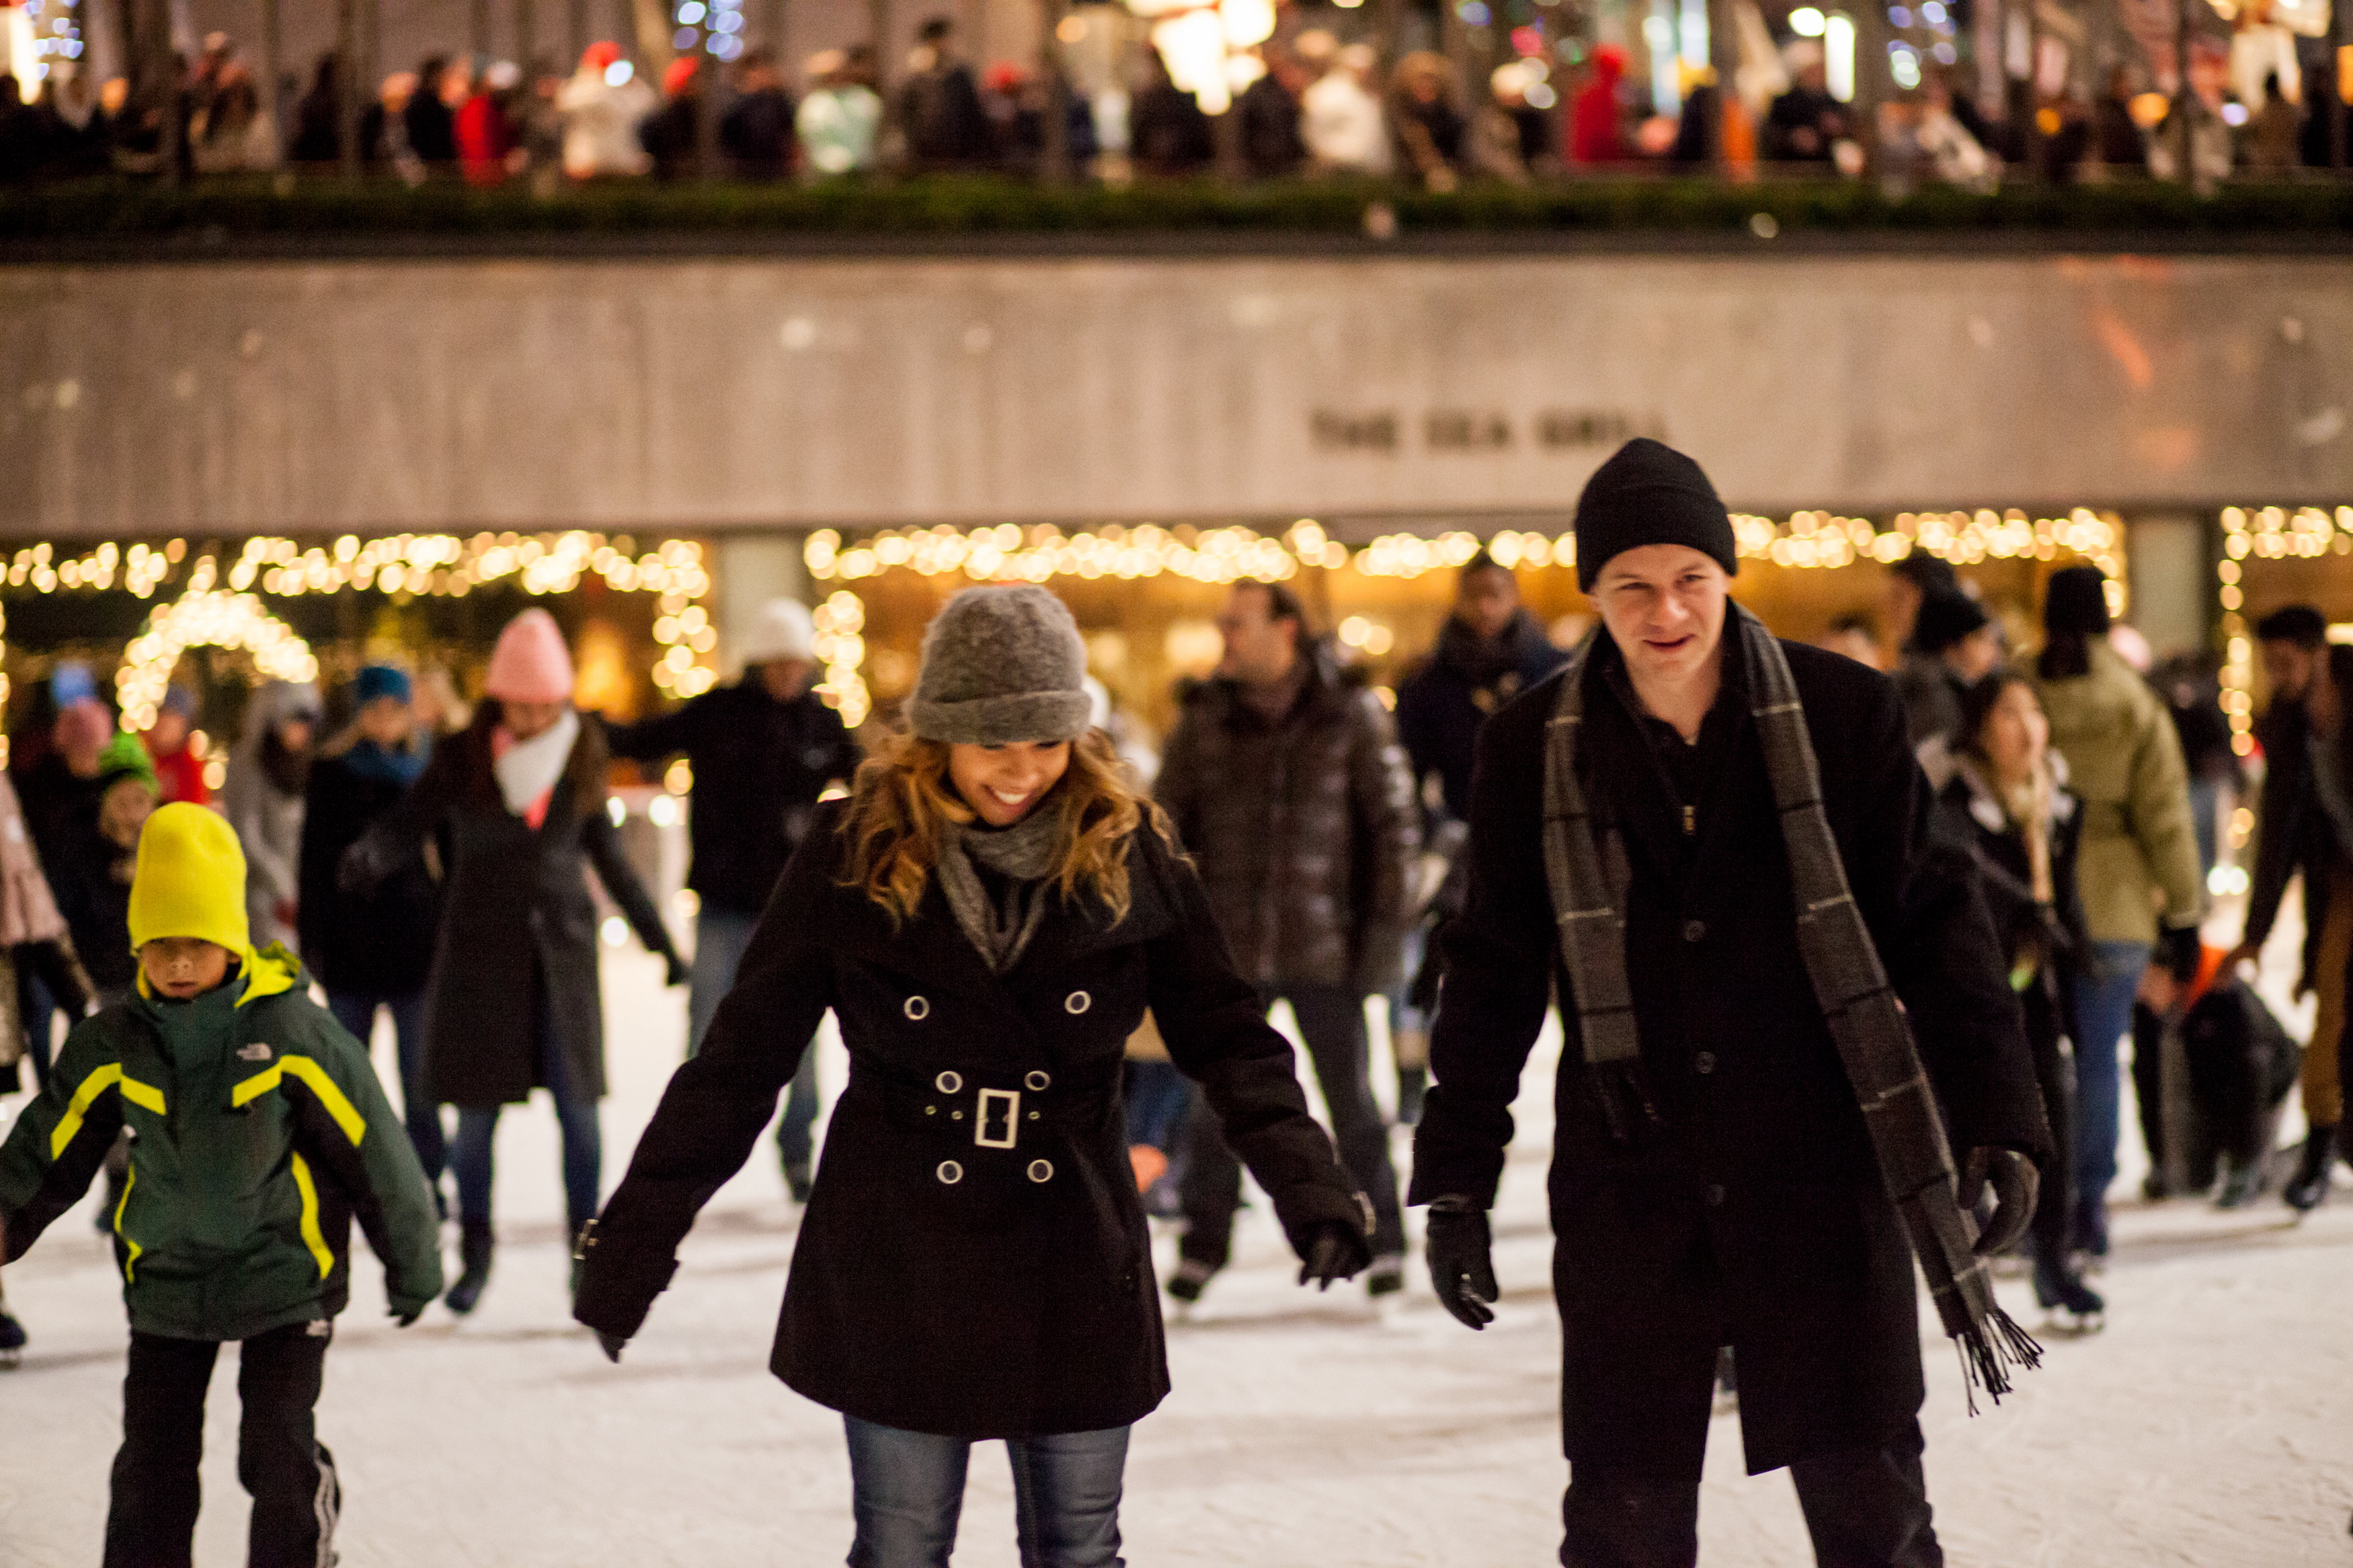 Image 1 of Christmas Day Proposal at Rockefeller Plaza